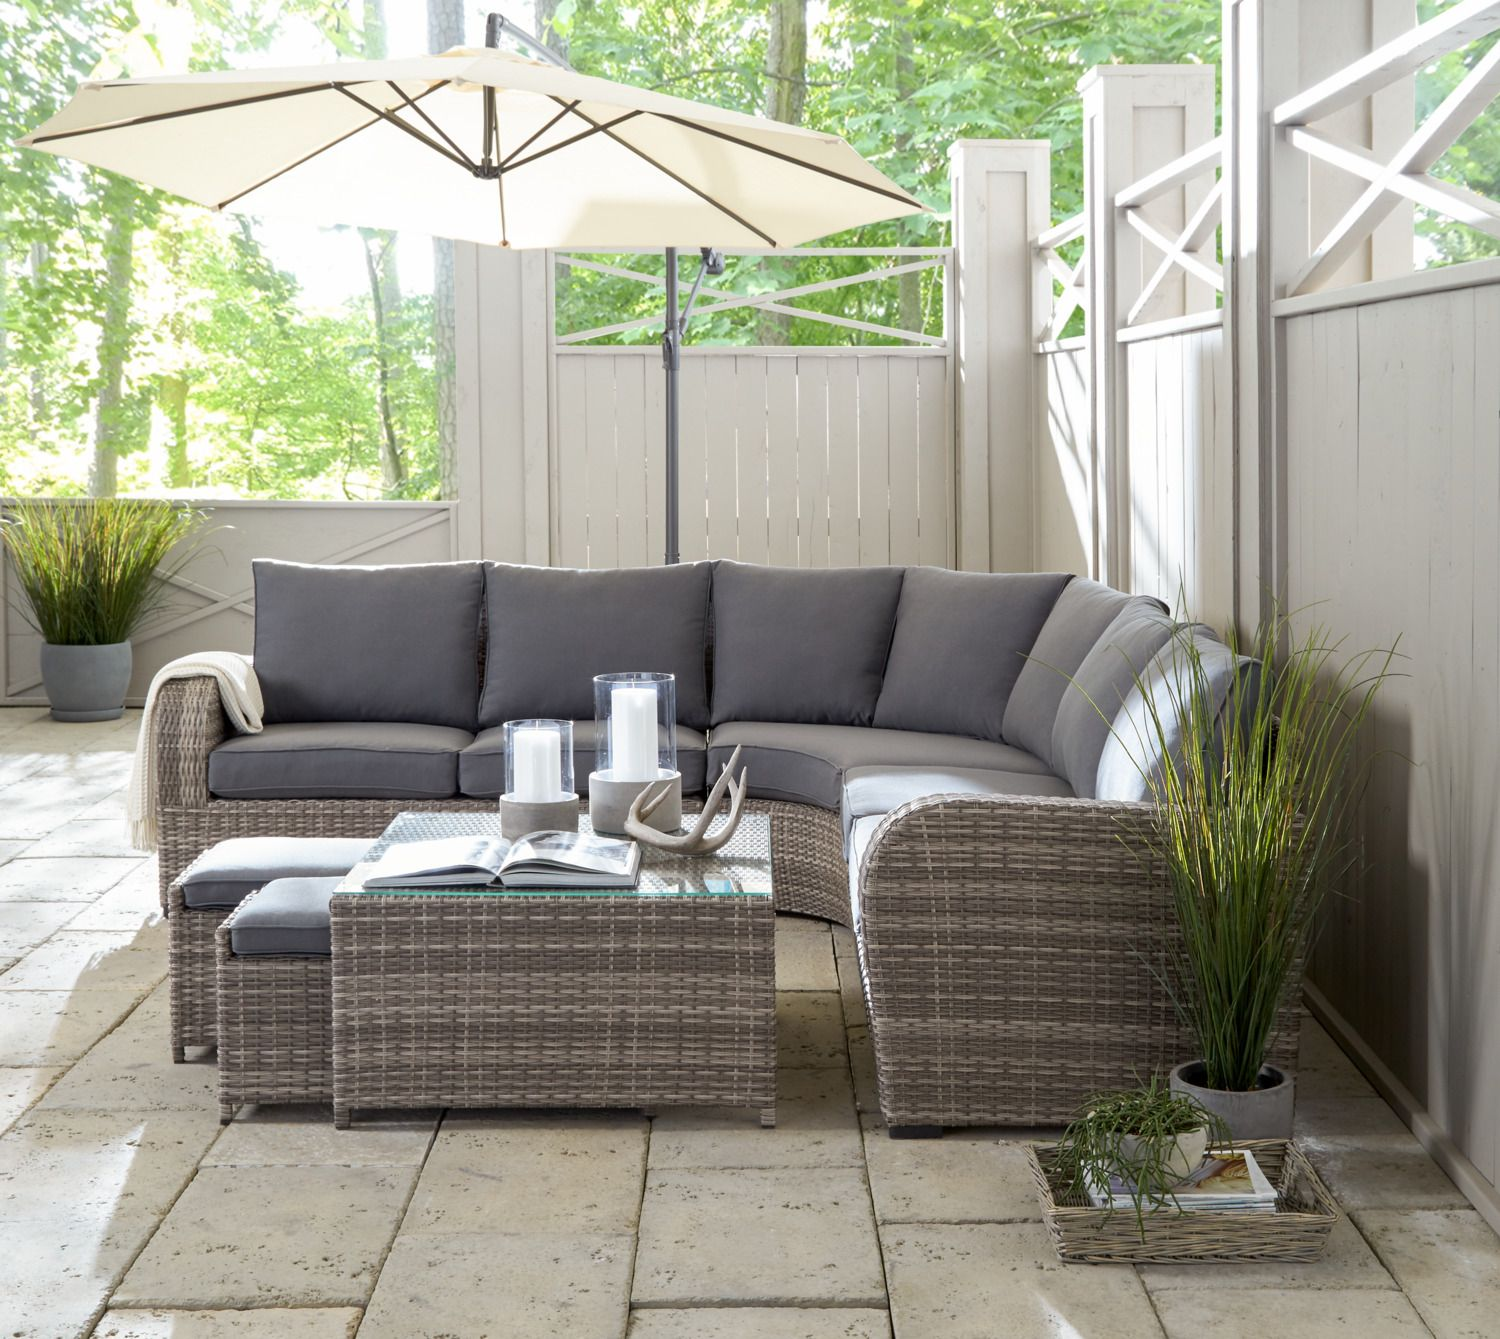 Luxurious Lounging The Melville Outdoor Sectional Was Expertly Crafted To Encourage Y Gray Patio Furniture White Wicker Patio Furniture Patio Dining Furniture